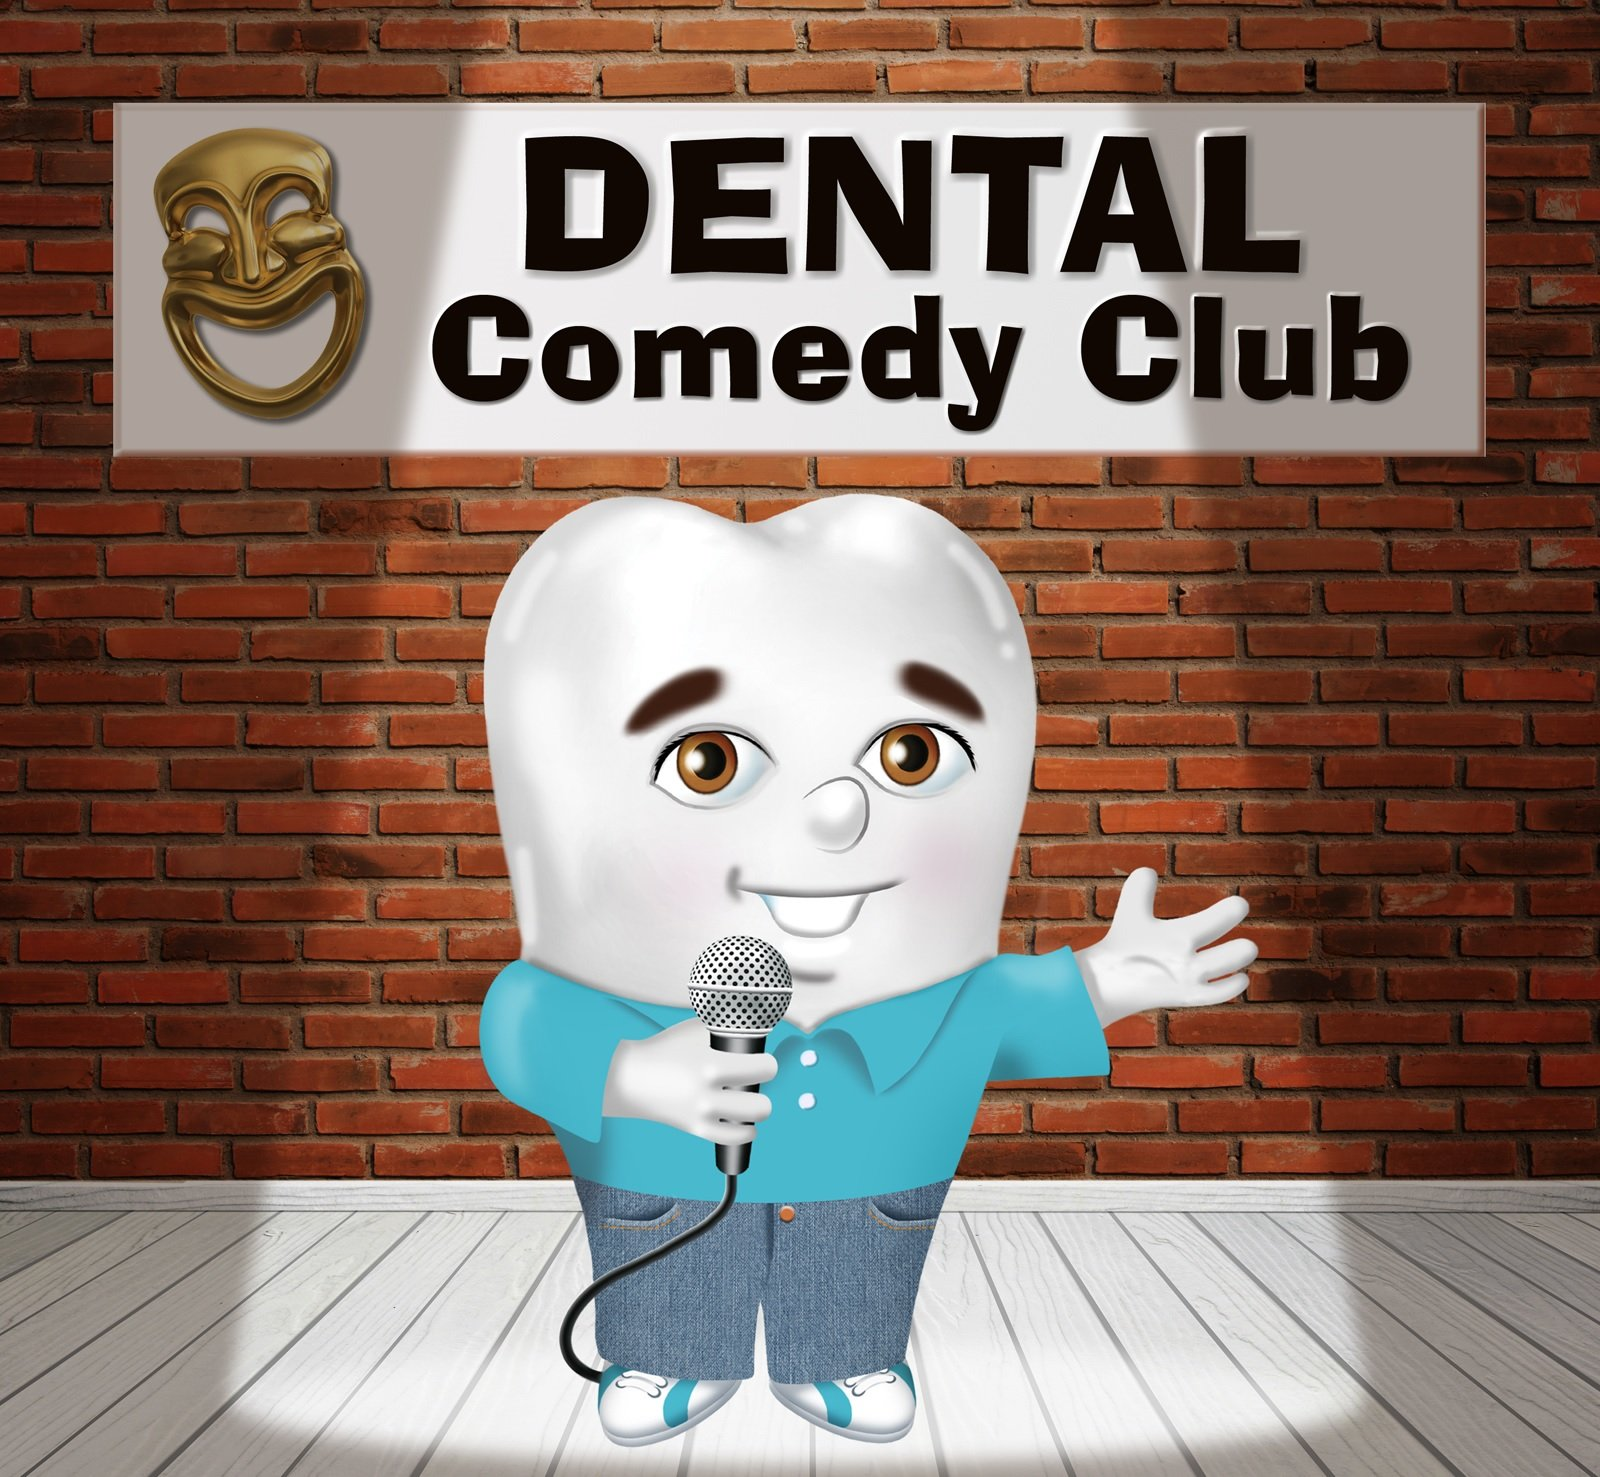 Dental Comedy